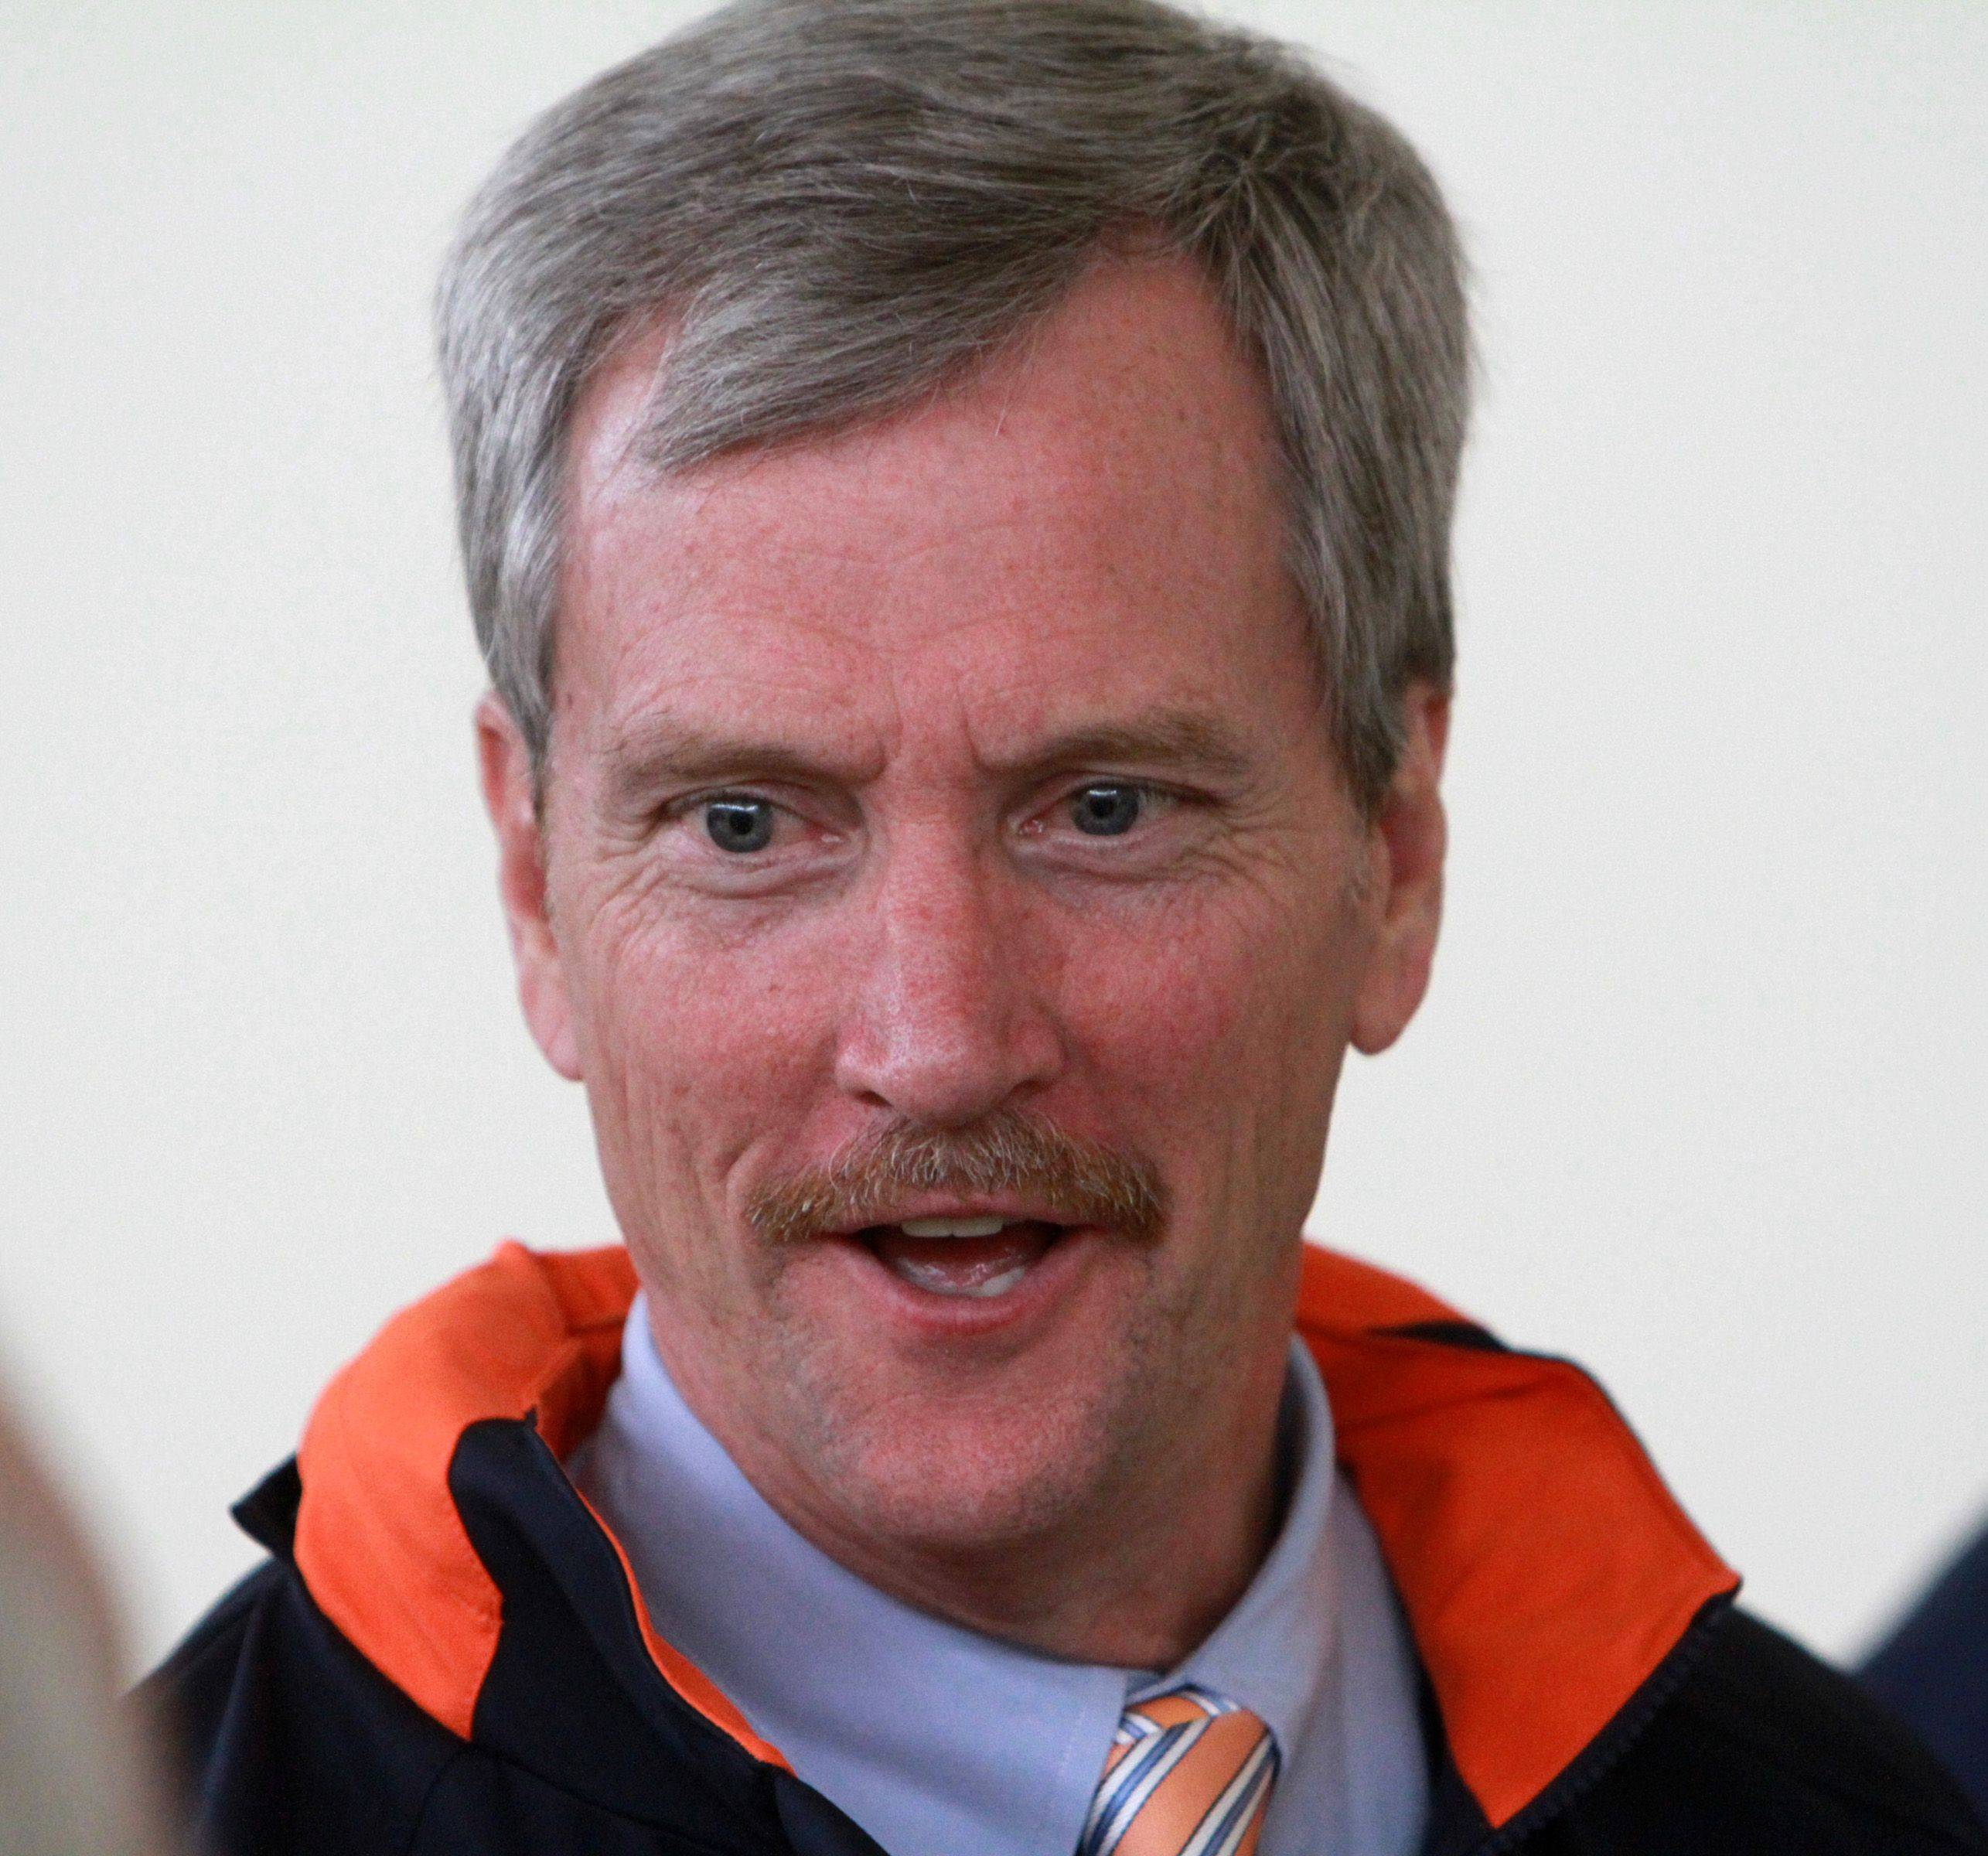 At age 54, George McCaskey is the fourth chairman in the history of the Chicago Bears. His older brother Michael retired from the post last month.